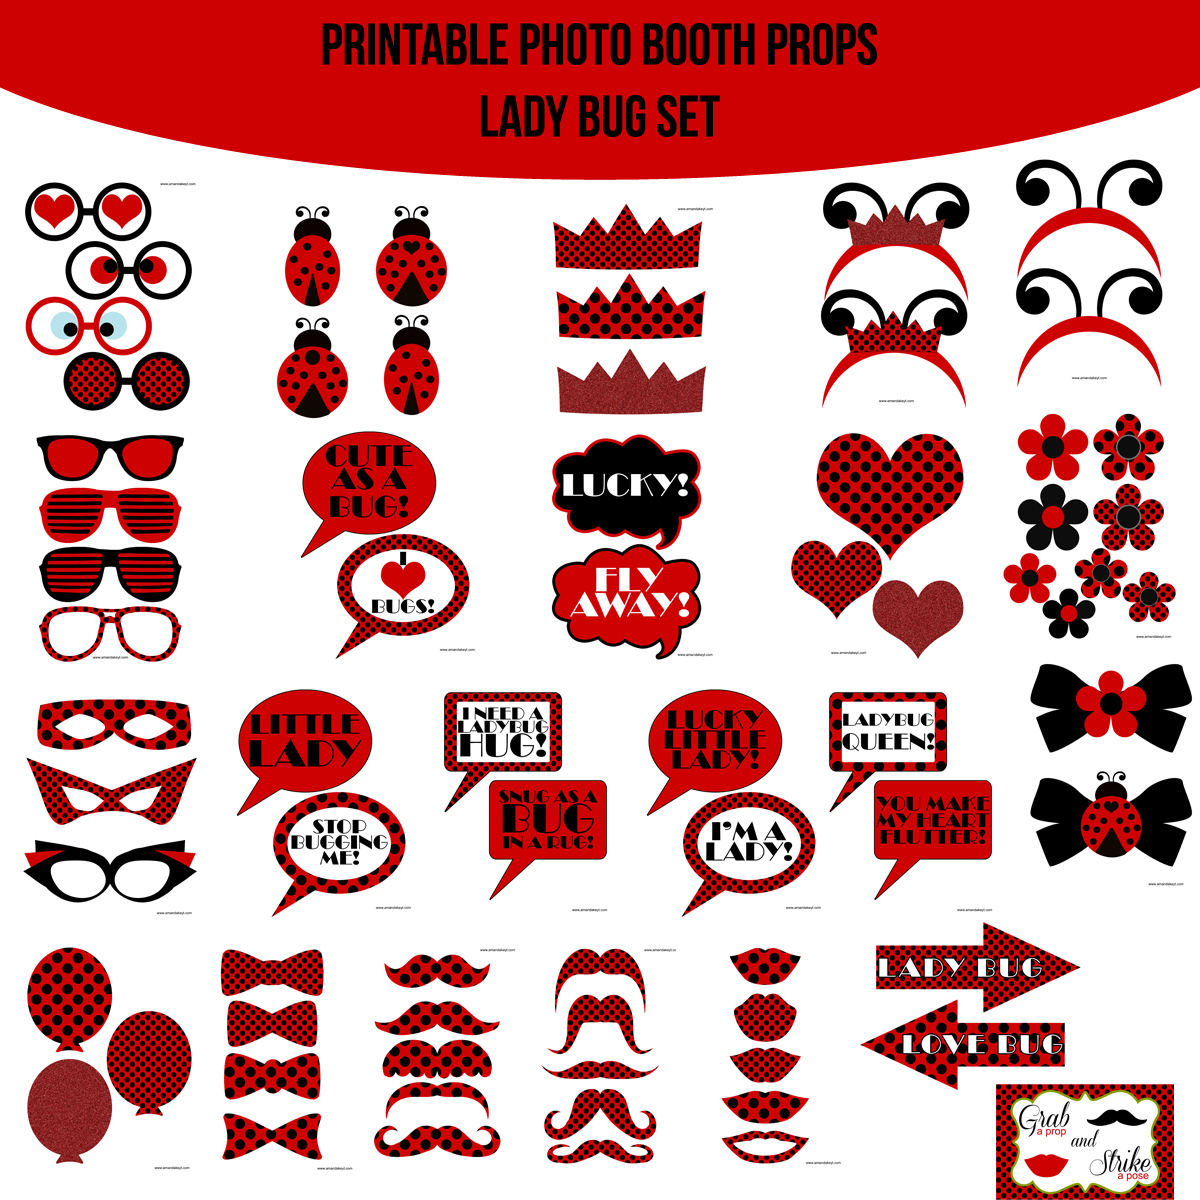 See the Set - To View The Whole Lady Bug Love Bug Printable Photo Booth Prop Set Click Here